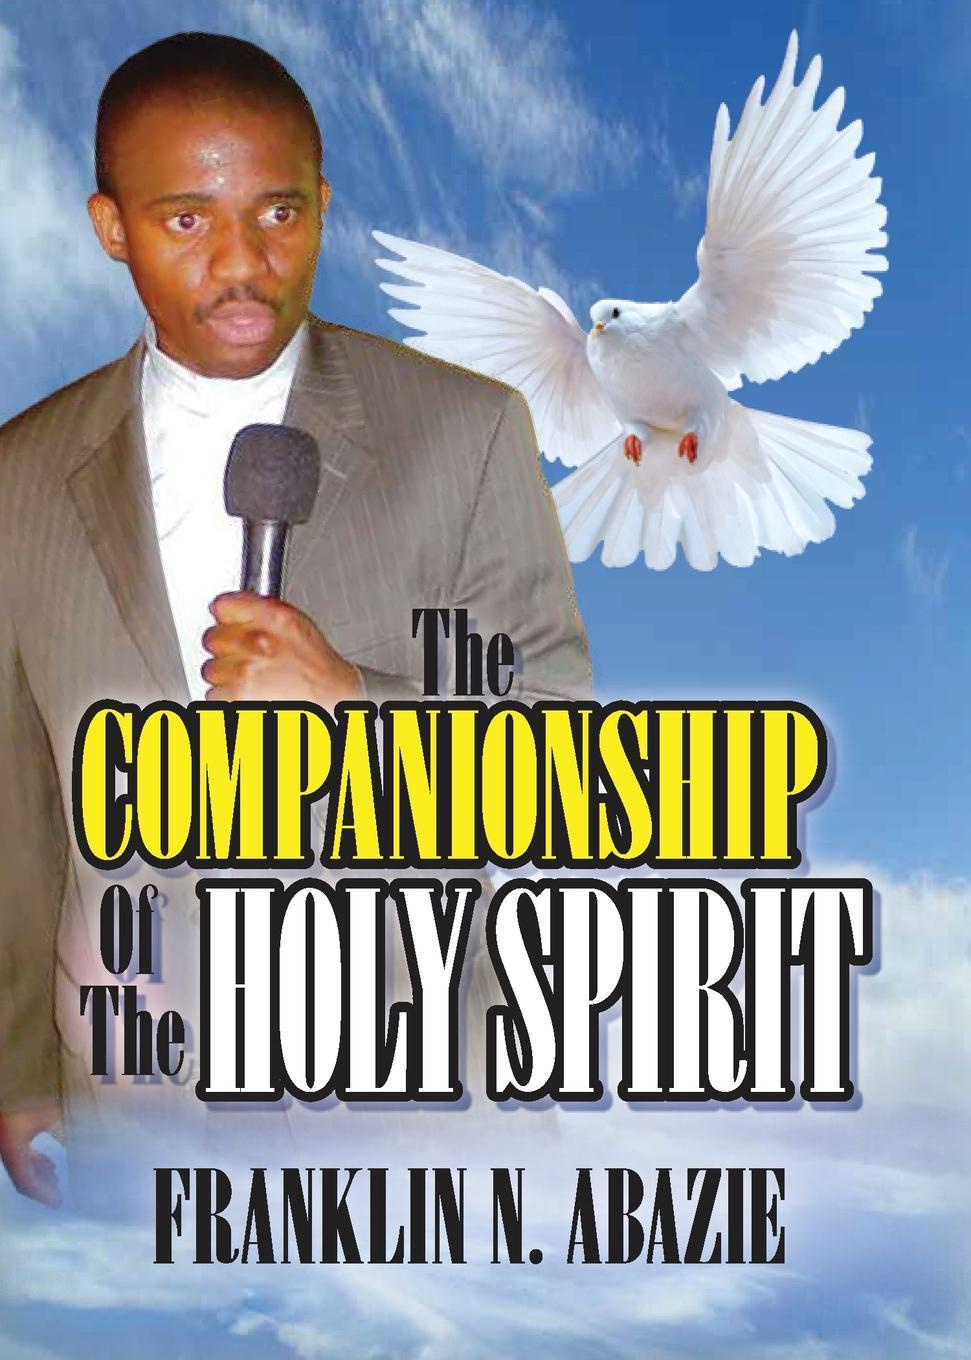 FRANKLIN N ABAZIE THE COMPANIONSHIP OF THE HOLY SPIRIT. HOLY SPIRIT irene bonney faulkes d d the holy spirit came